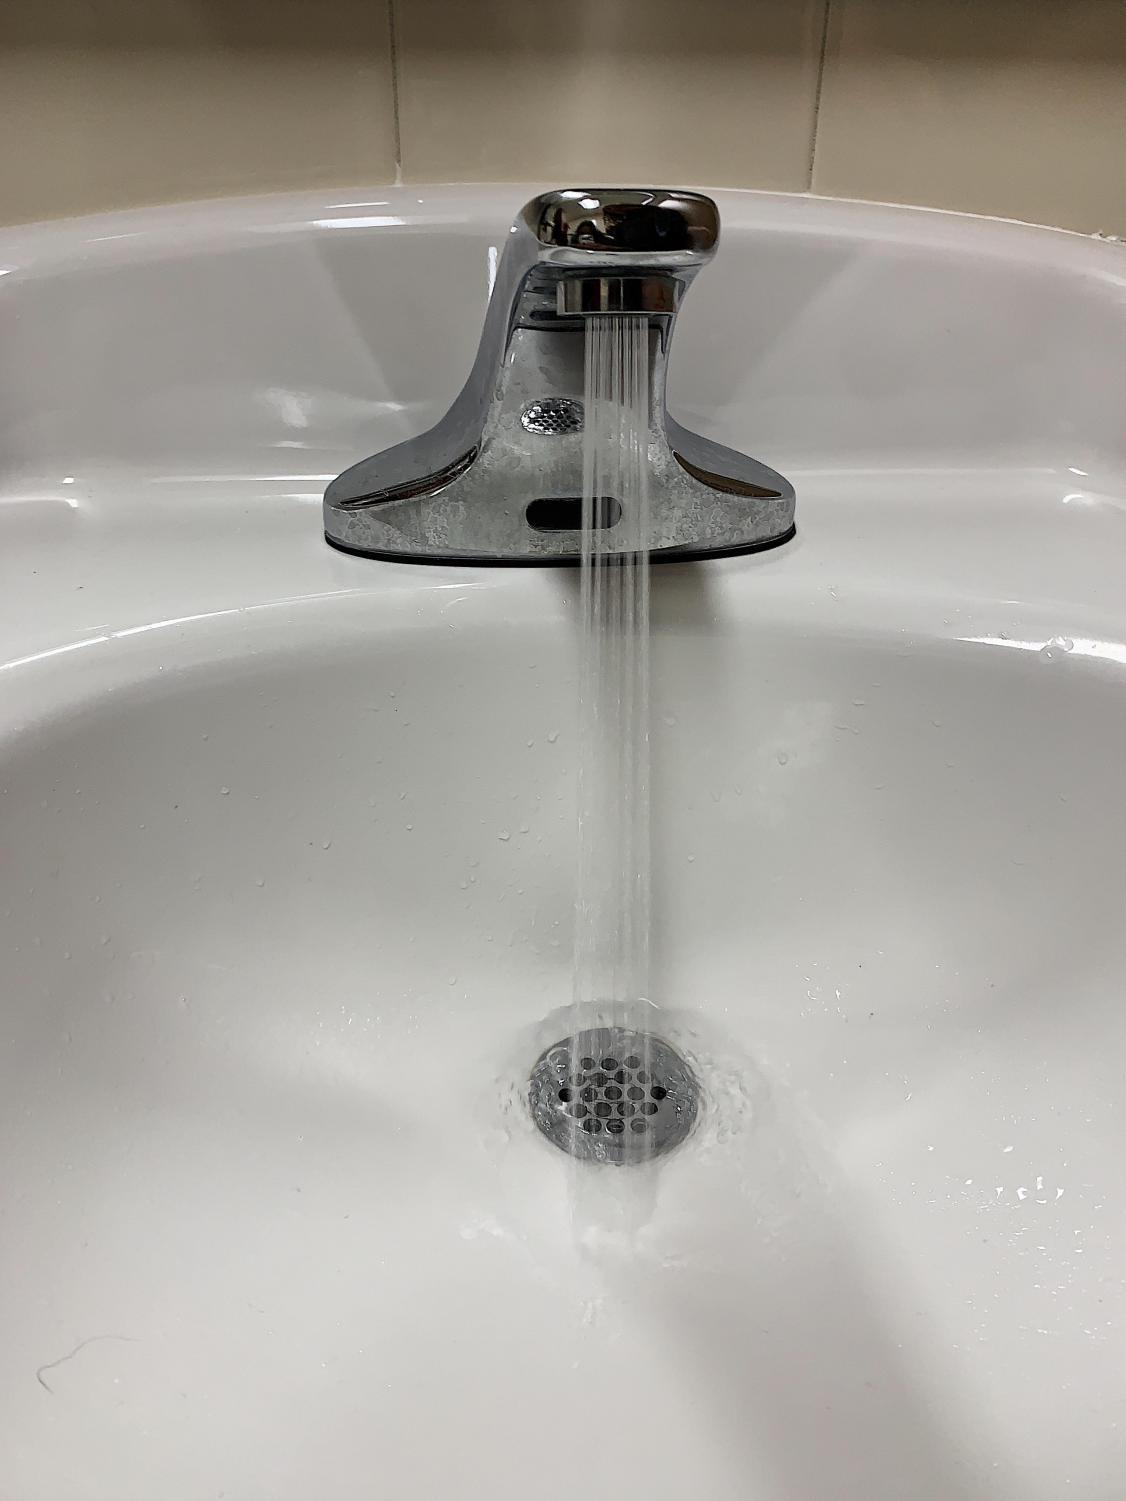 Grayslake residents were affected by the burst in the water pressure because the water was unsafe to use.